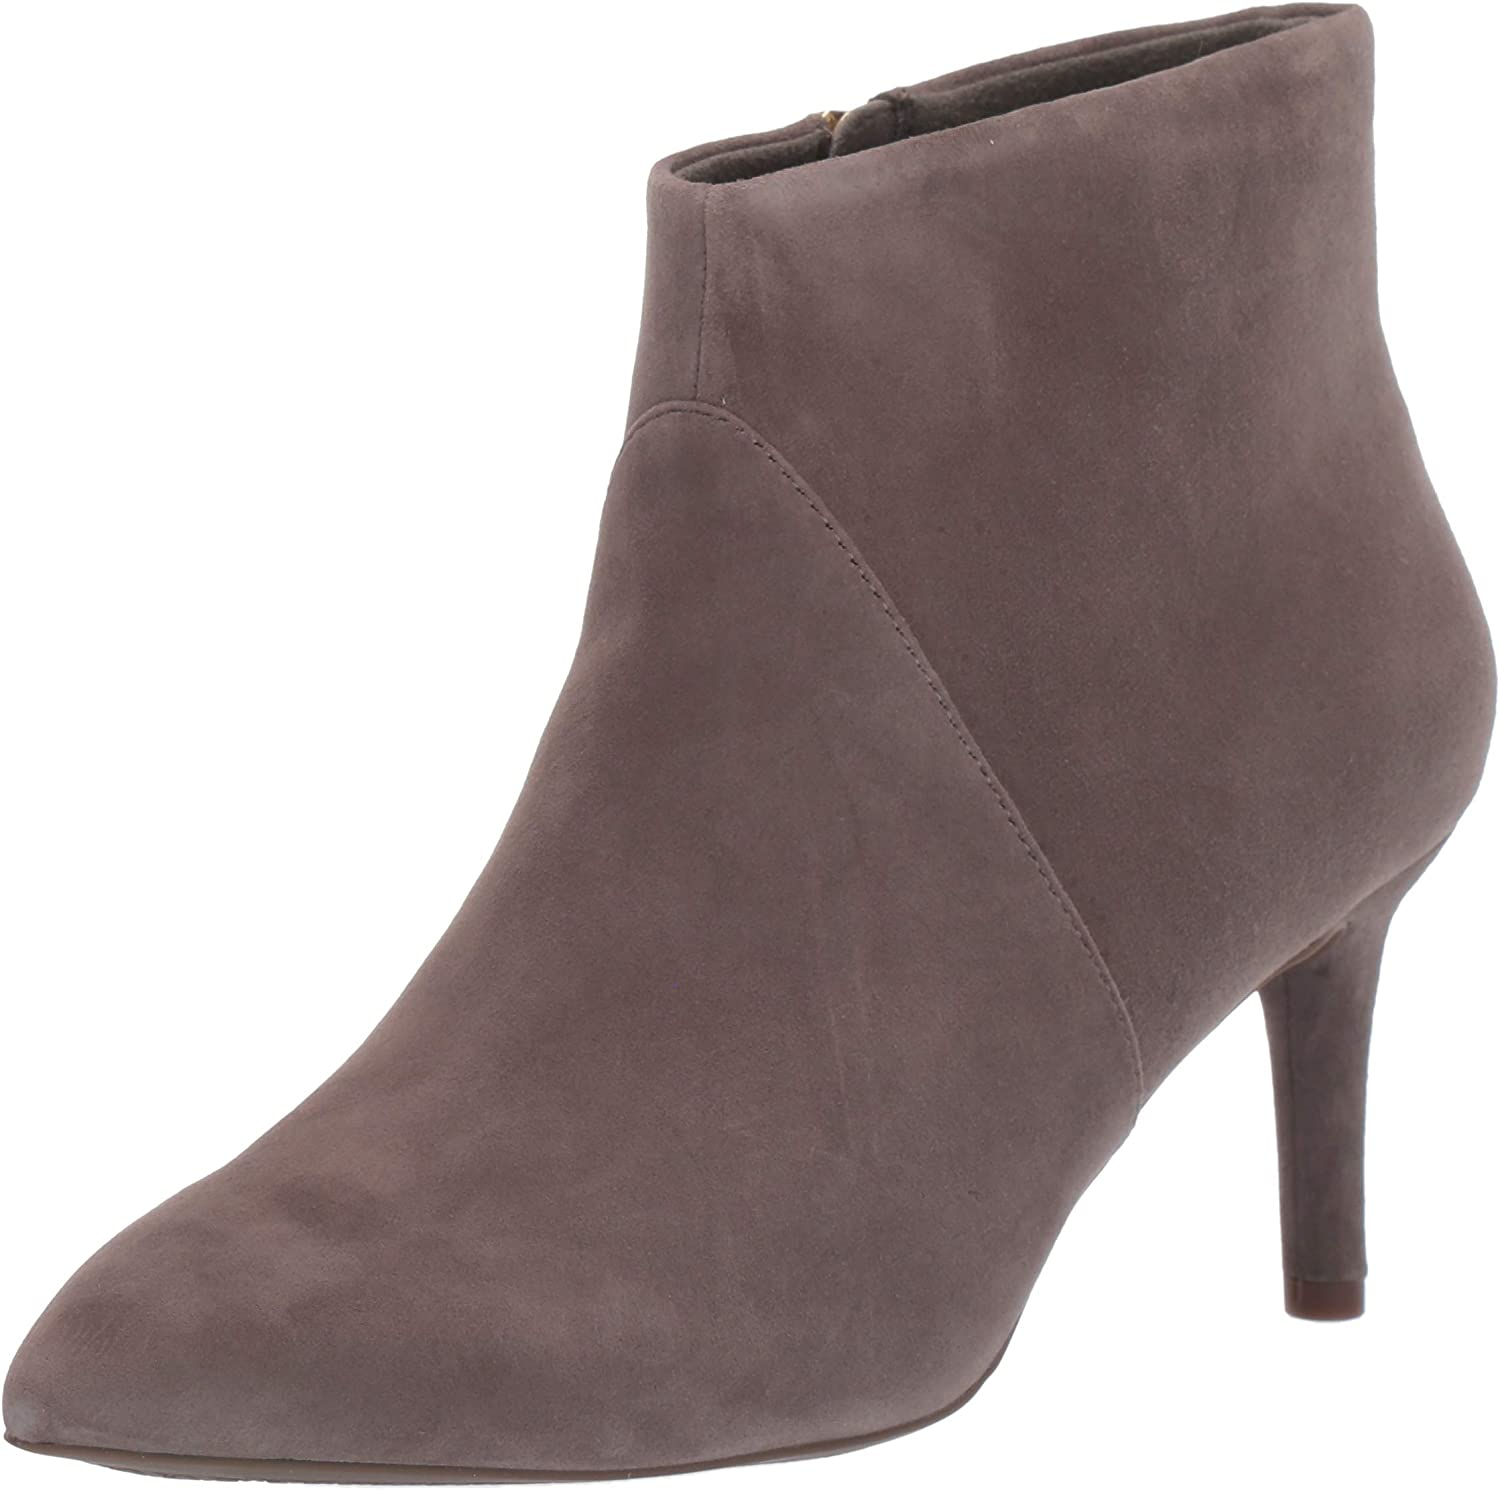 Rockport Women's Tm Ariahnna Ankle Boot Plain B Max 86% OFF Challenge the lowest price of Japan ☆